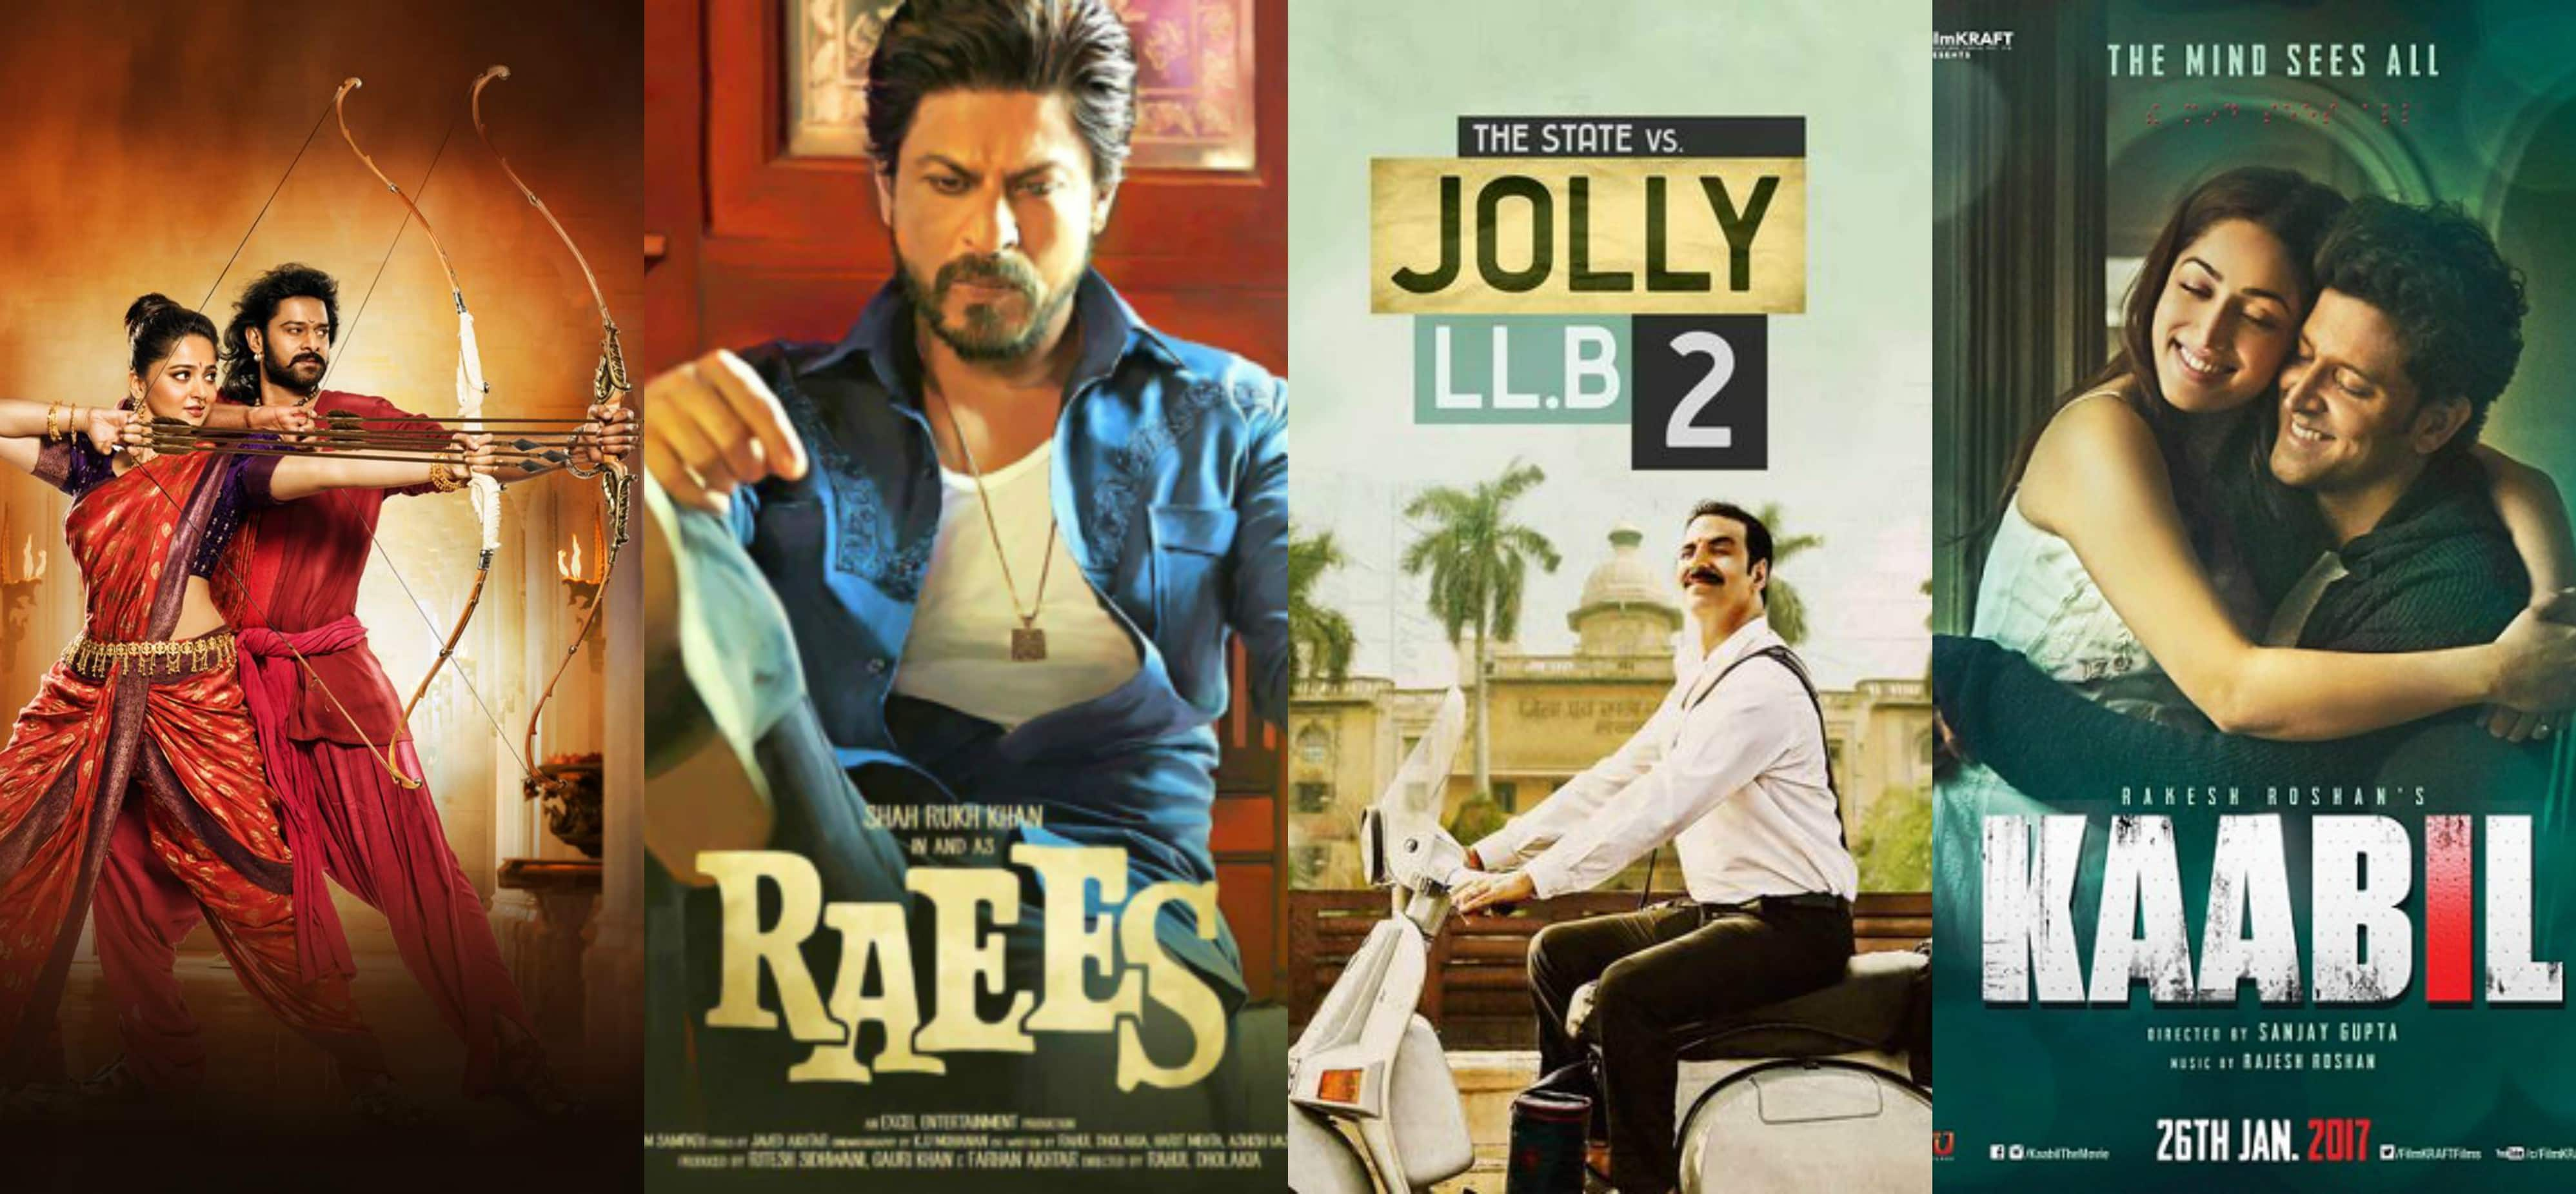 #TutejaTalks: Bollywood Does Better Than 2016 In First Half Of 2017 - Is That Good Enough?